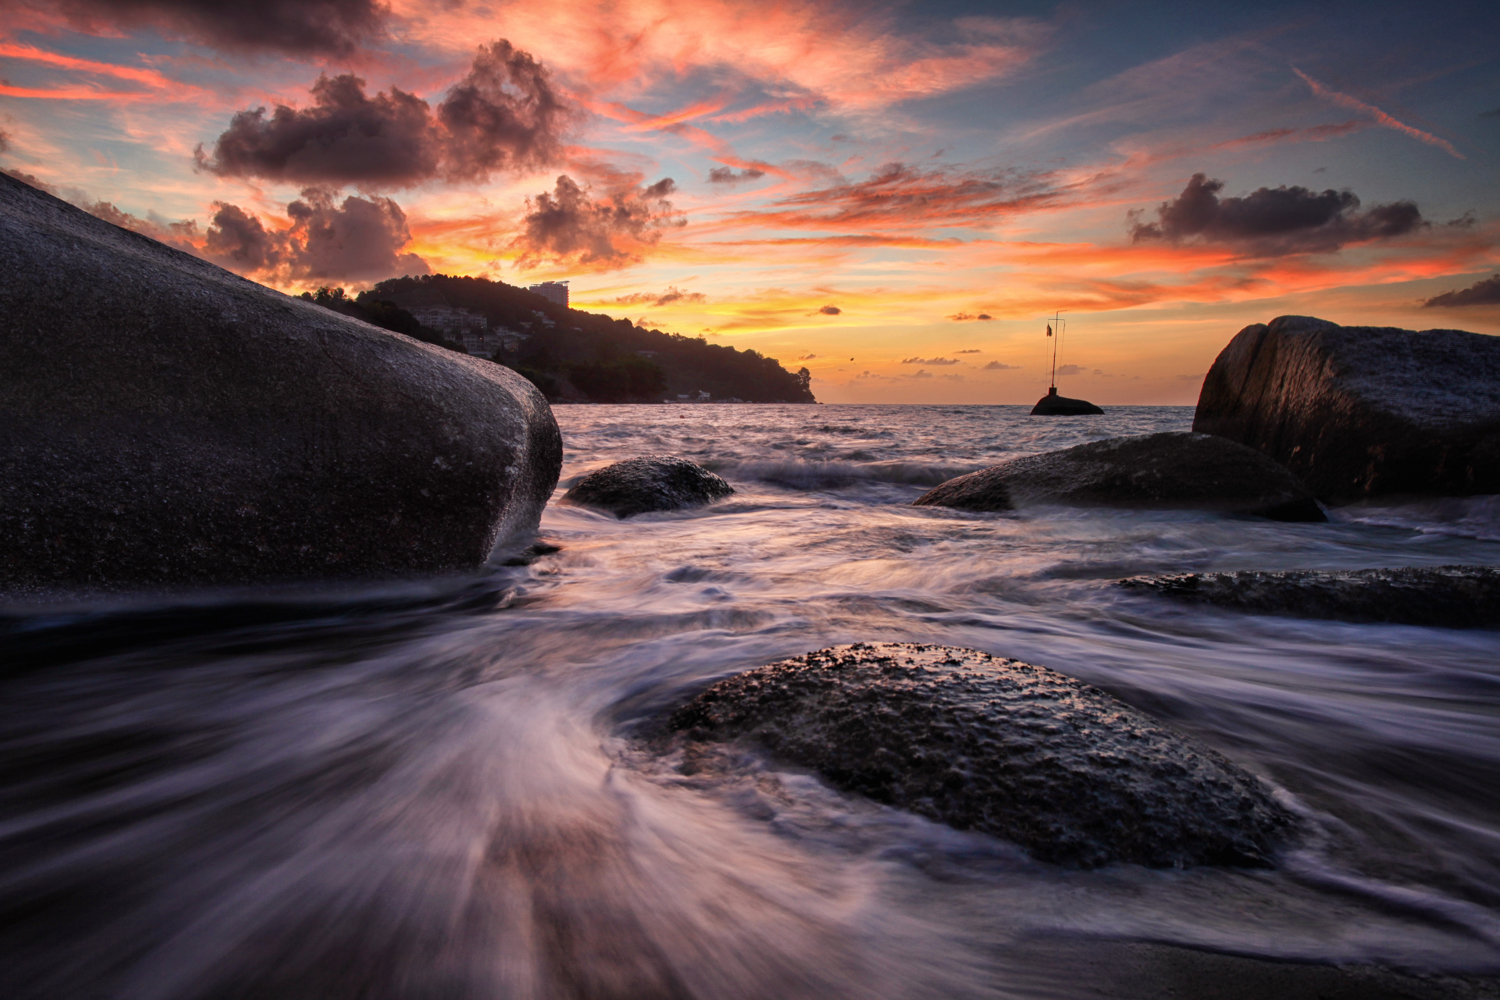 Image: This image used digital blending. The rocks in the foreground were lightened, and the sky dar...